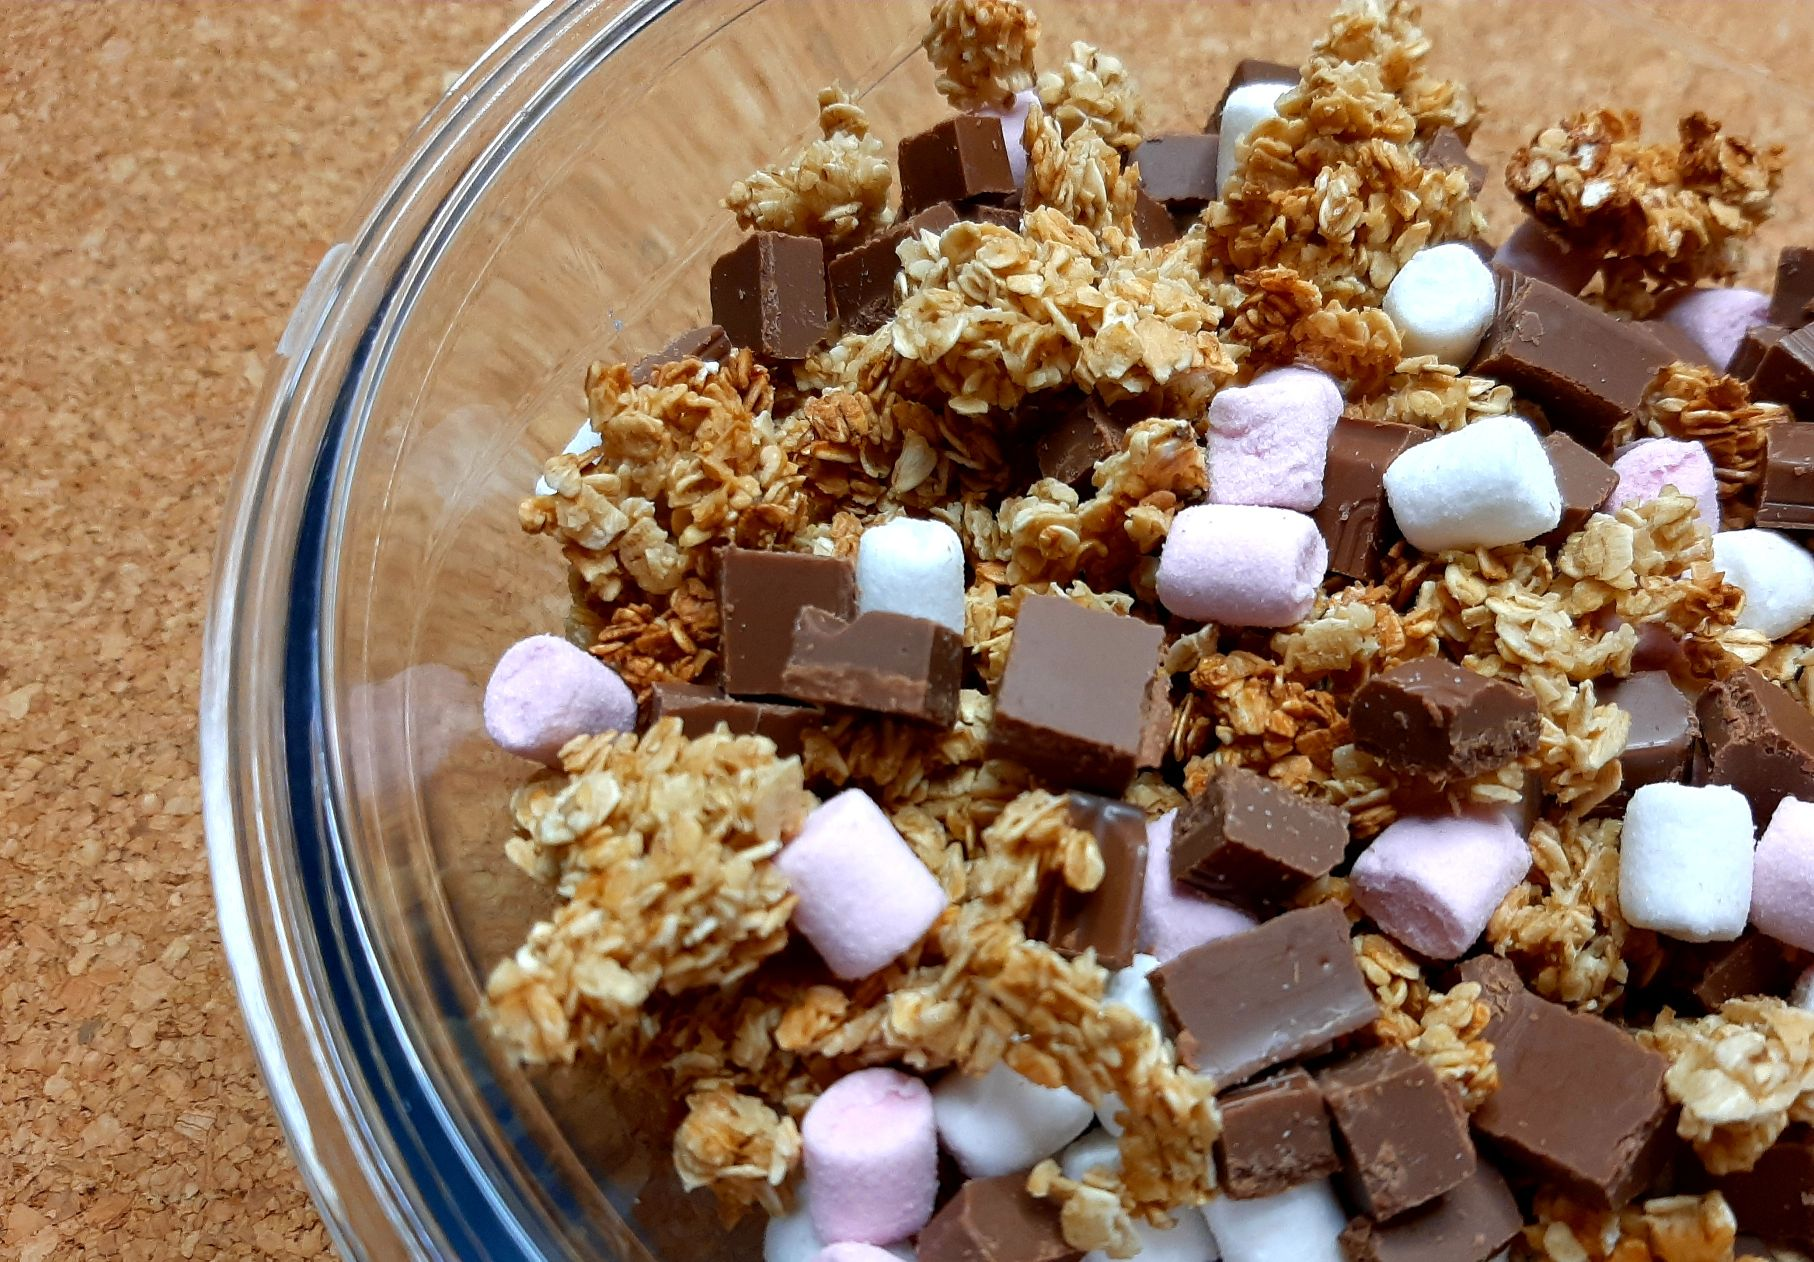 large granola pieces with chocolate chunks and mini marshmallows, in a glass bowl on a wooden surface